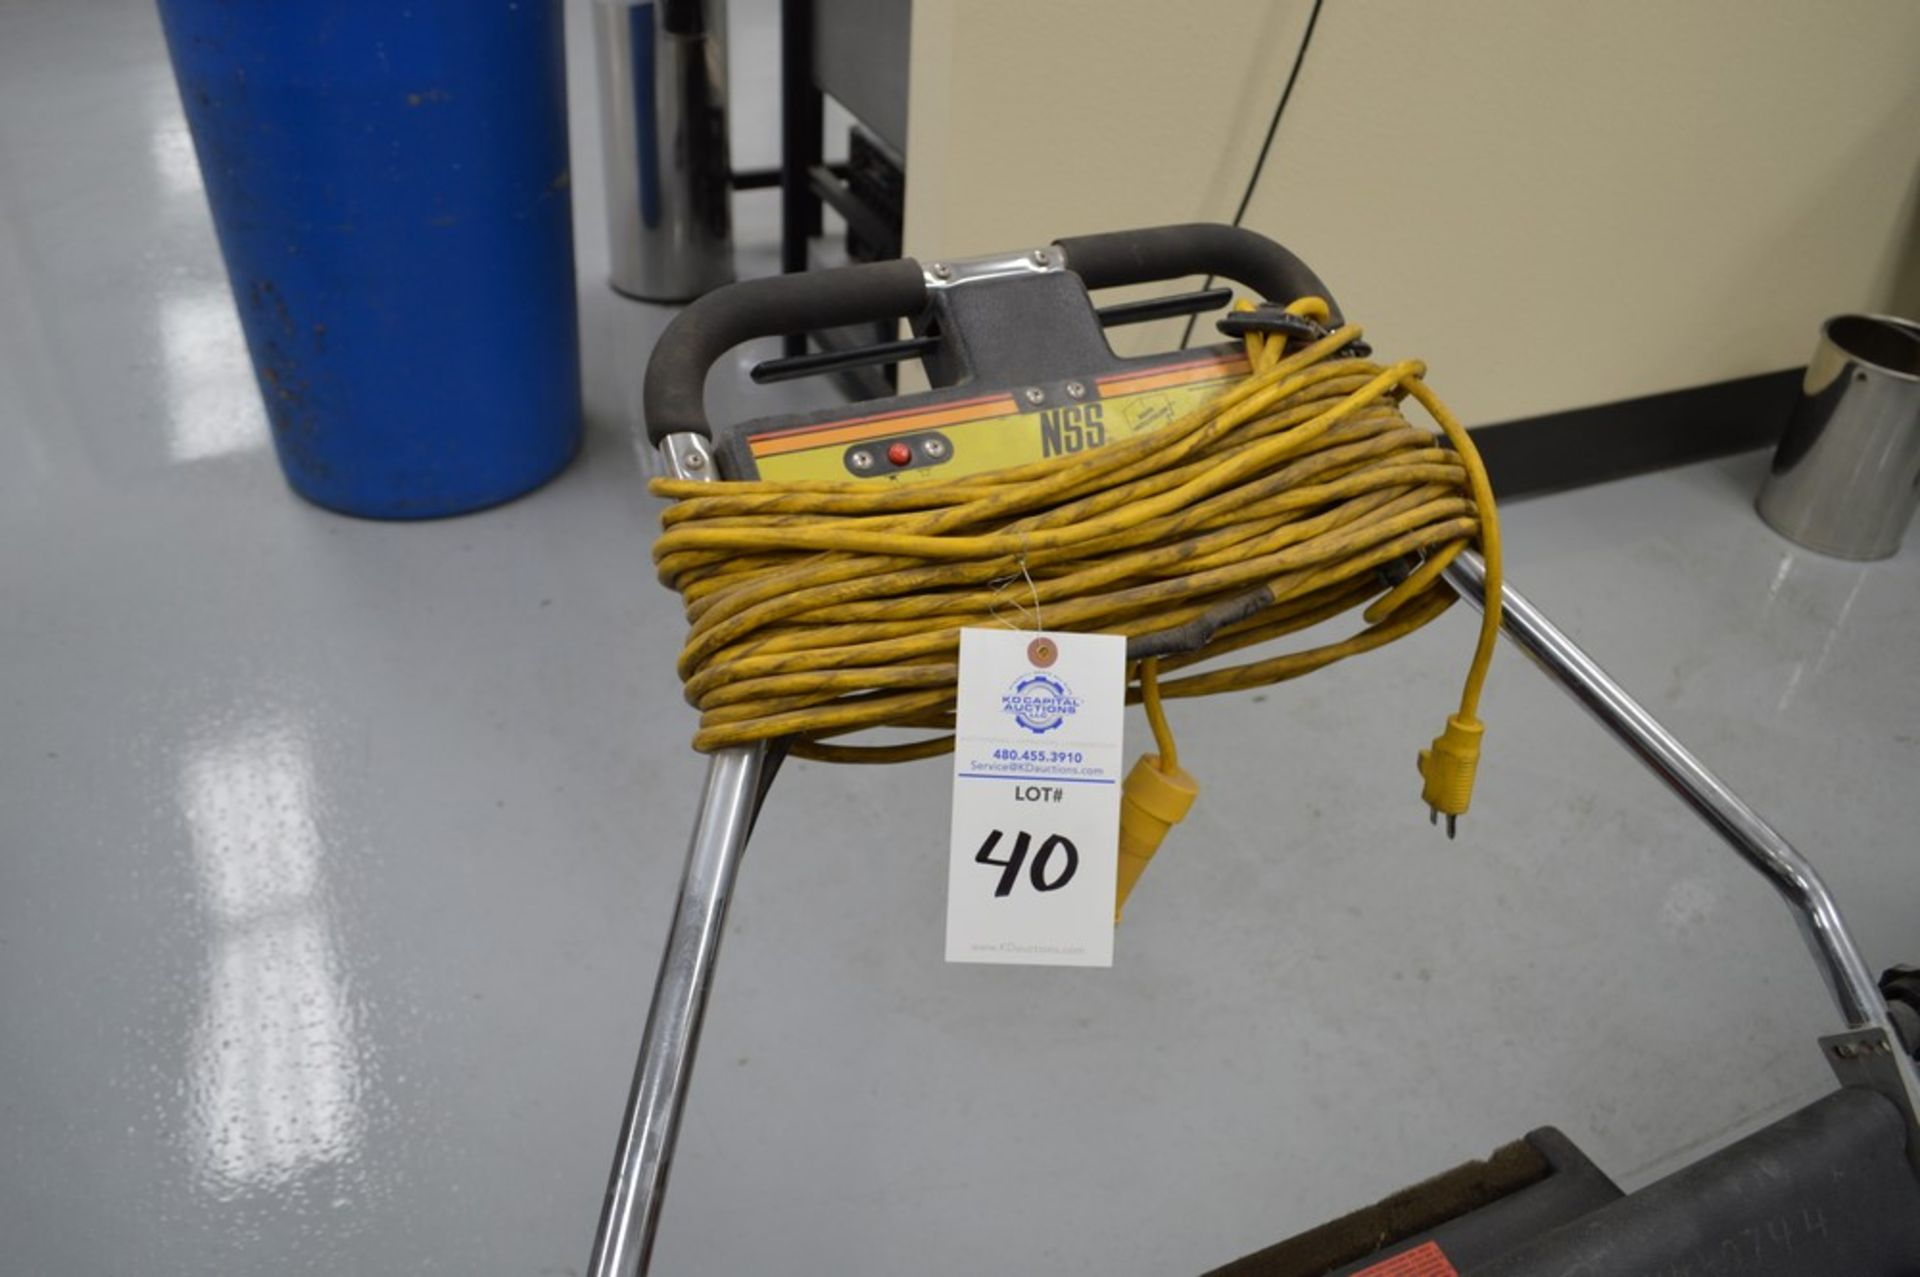 NSS, Super Suction Floor Vacuum Cleaner Model Pacer 30 - Image 2 of 5